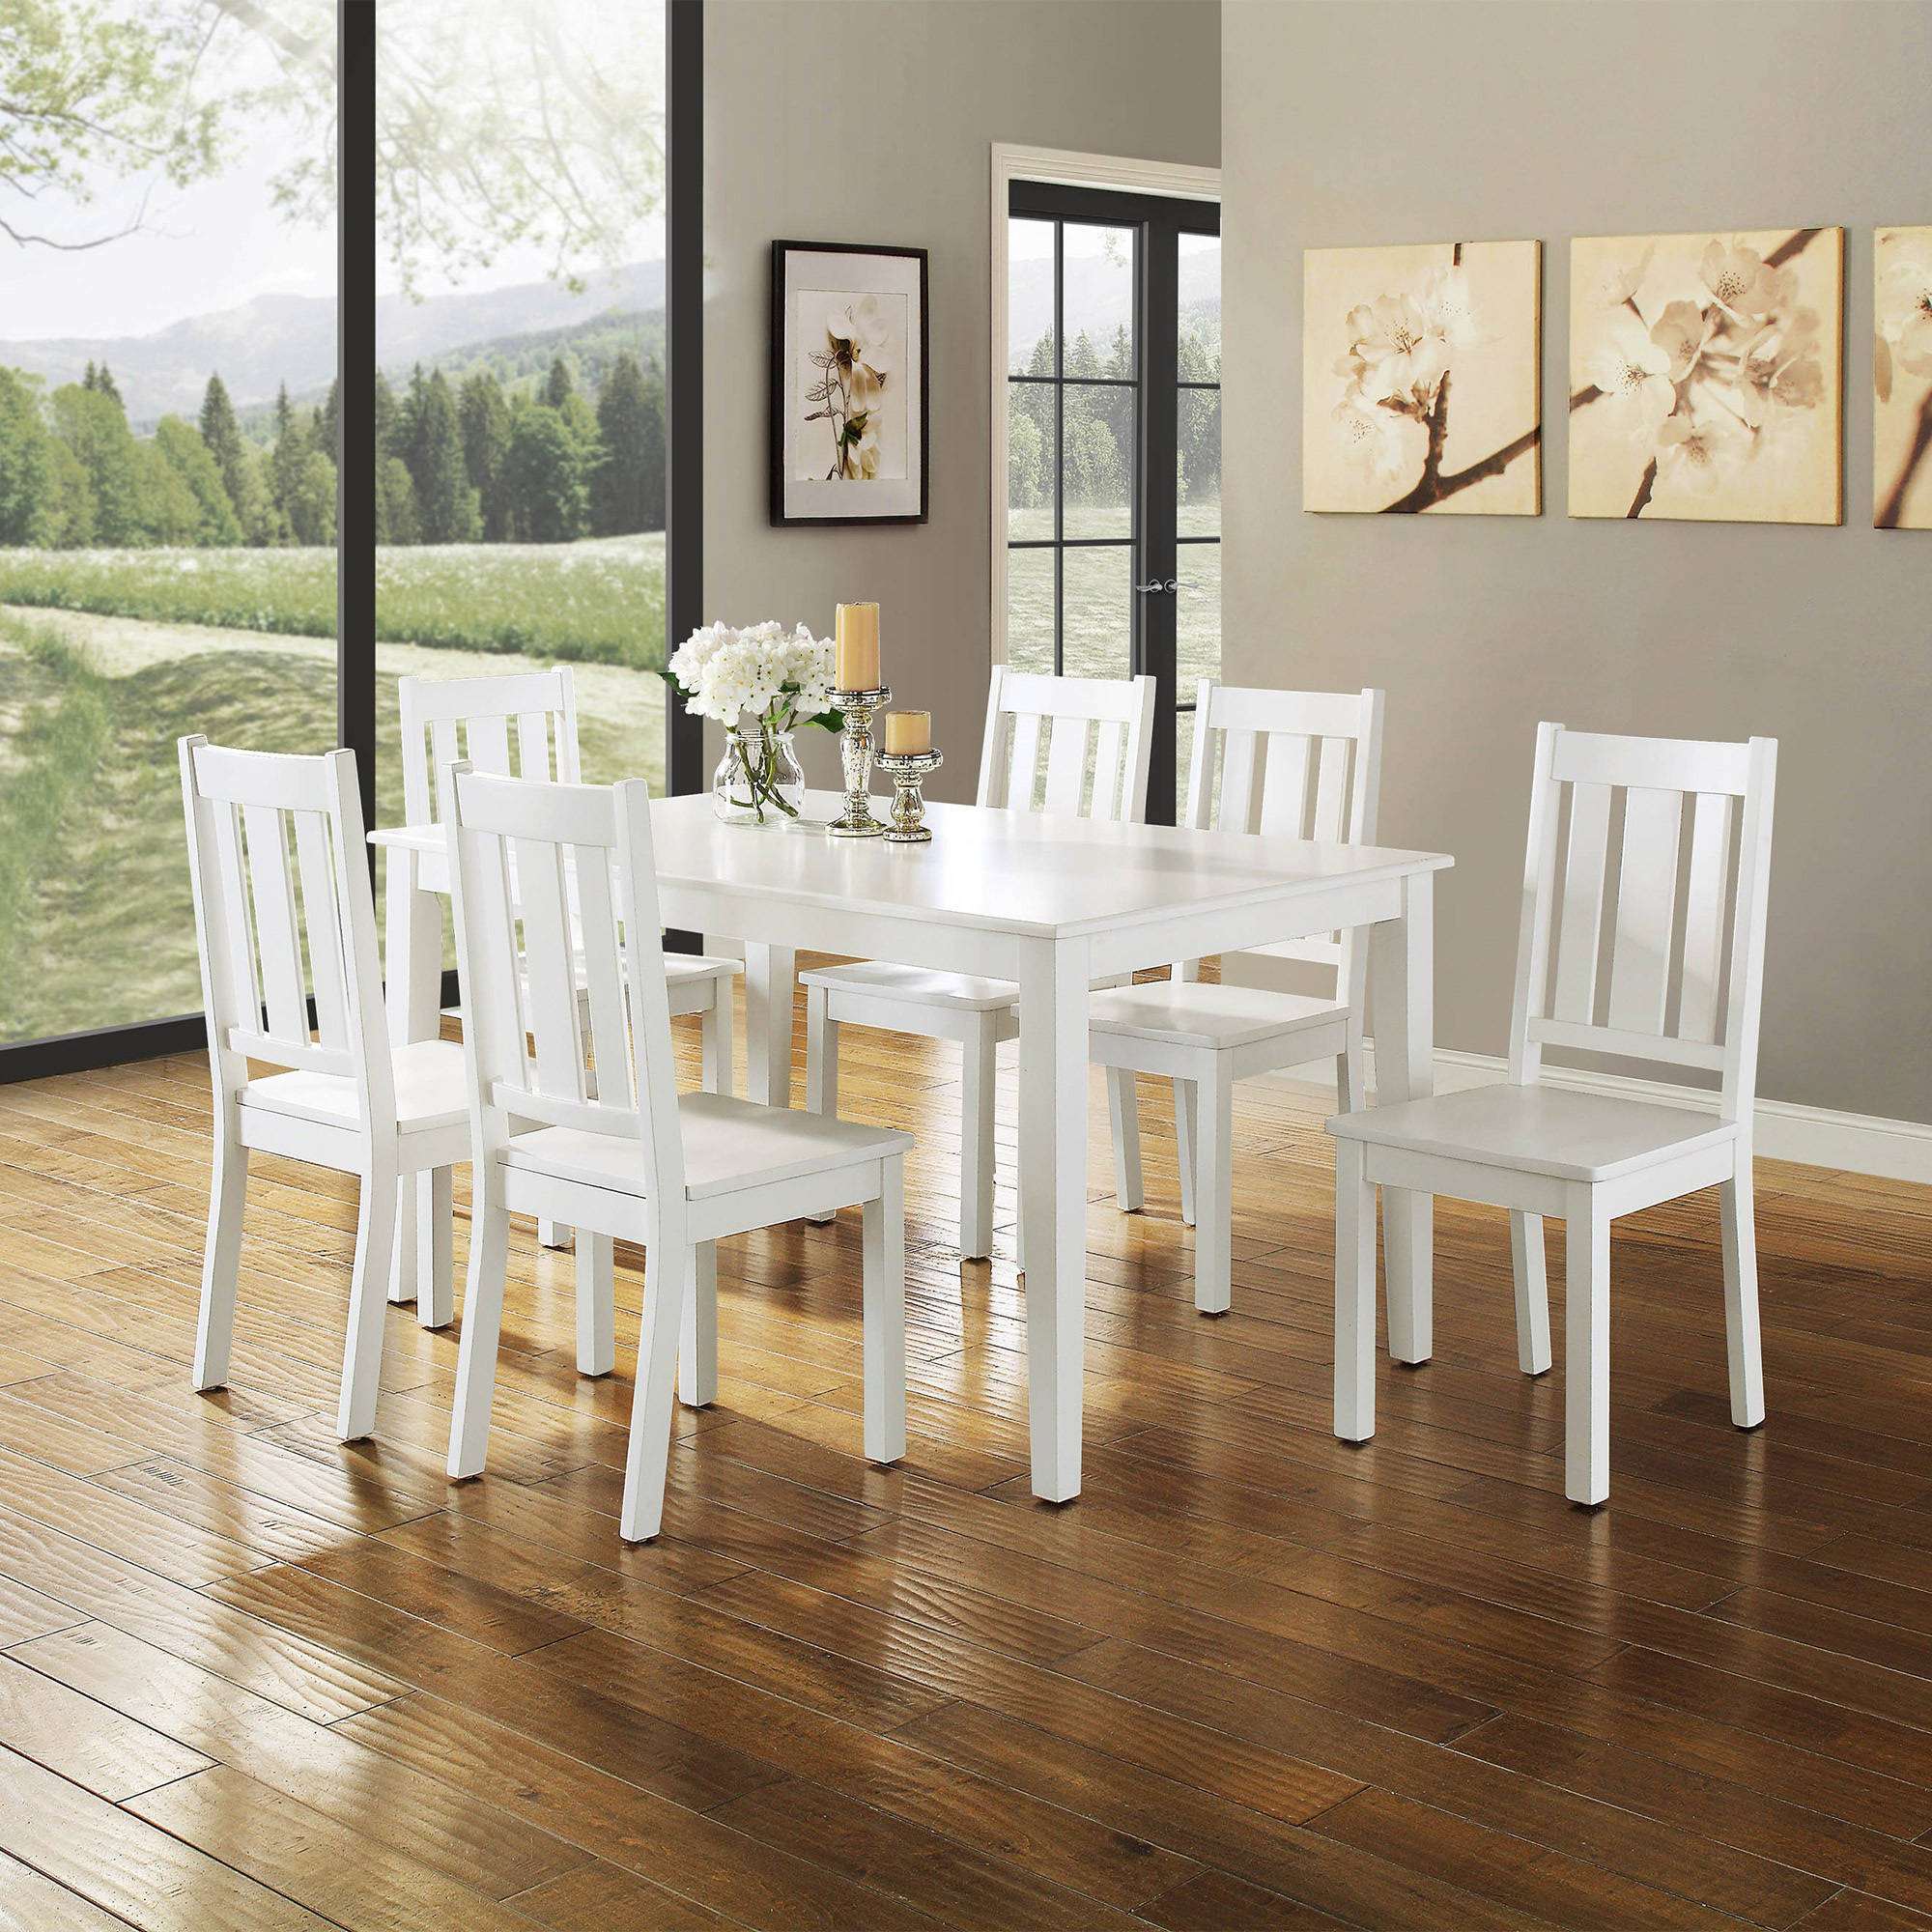 Better Homes and Gardens Bankston 7-Piece Dining Set, White